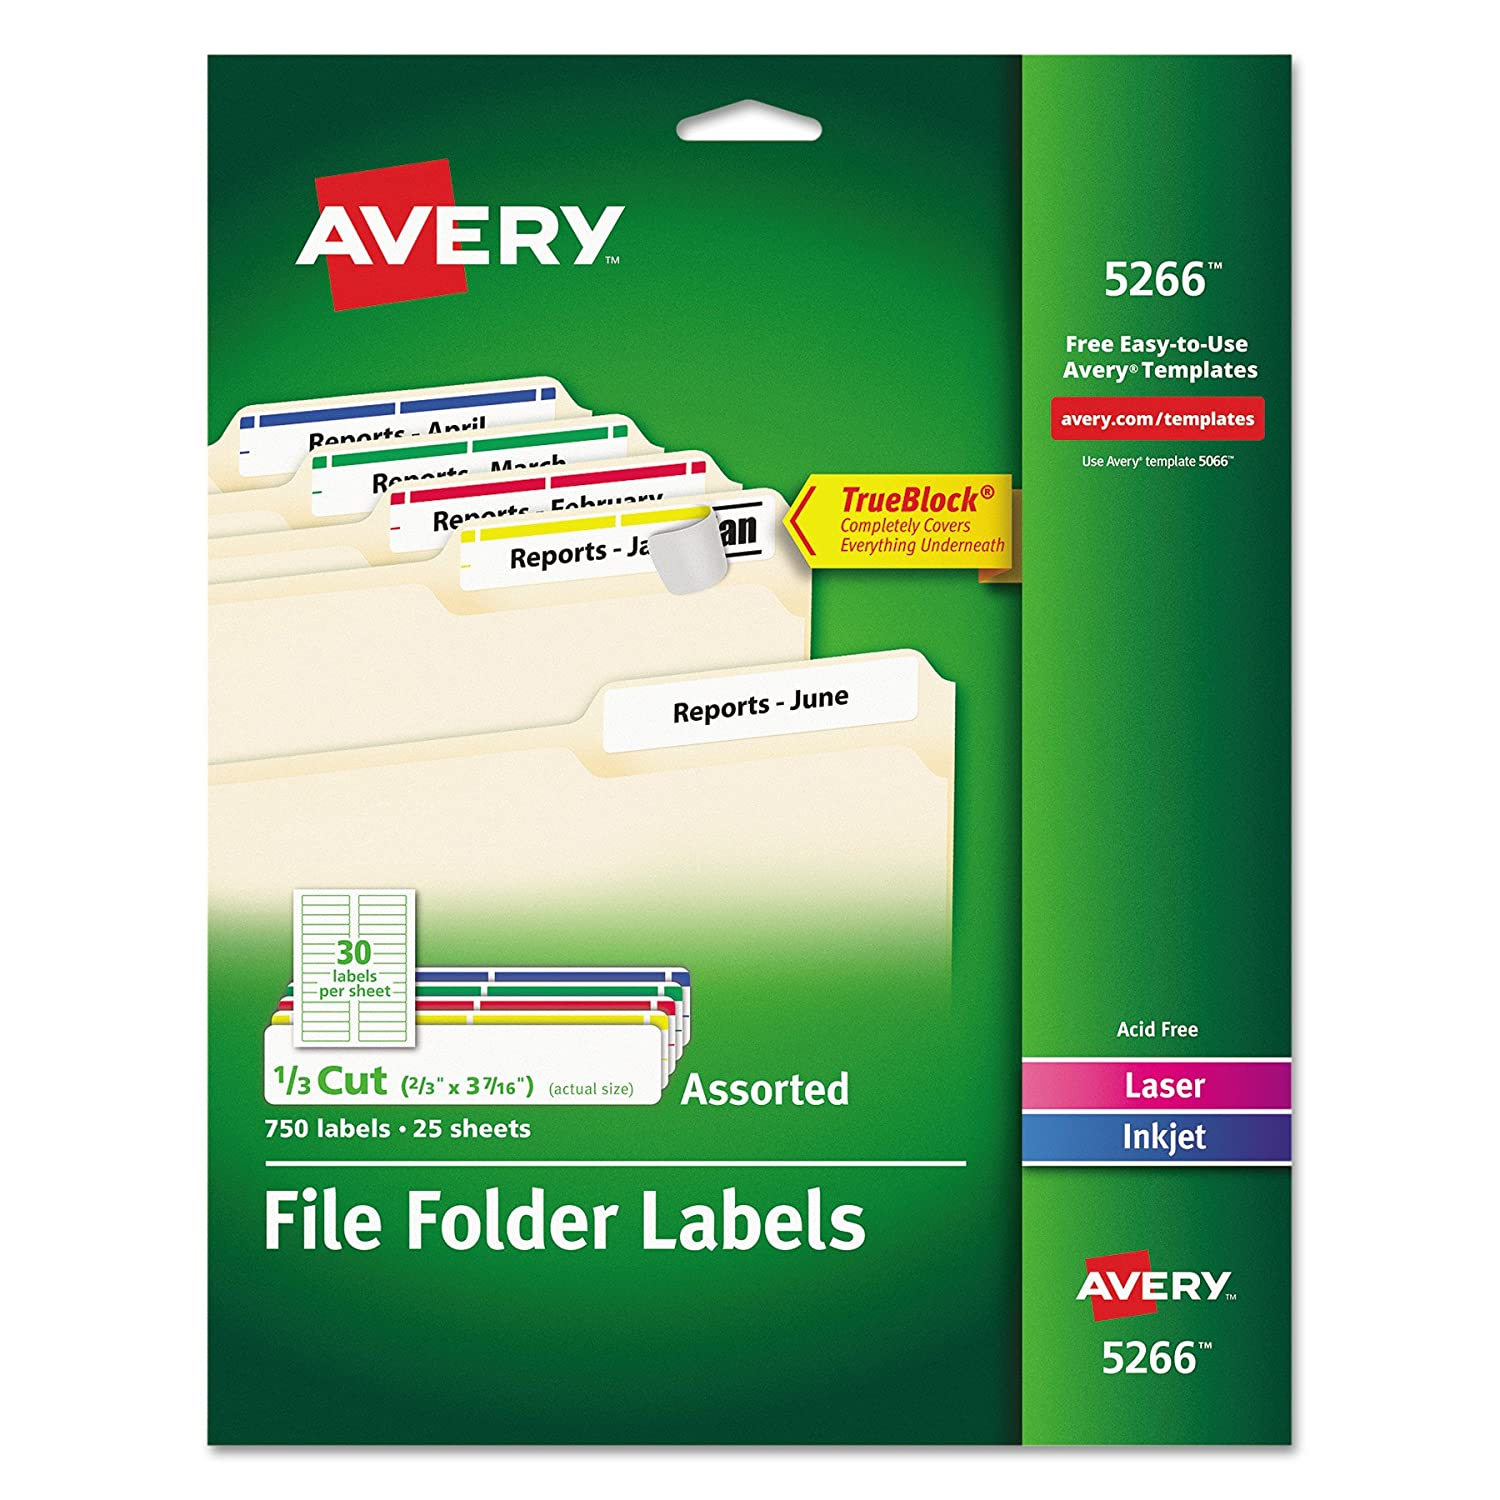 Amazon Avery File Folder Labels In Assorted Colors For Laser